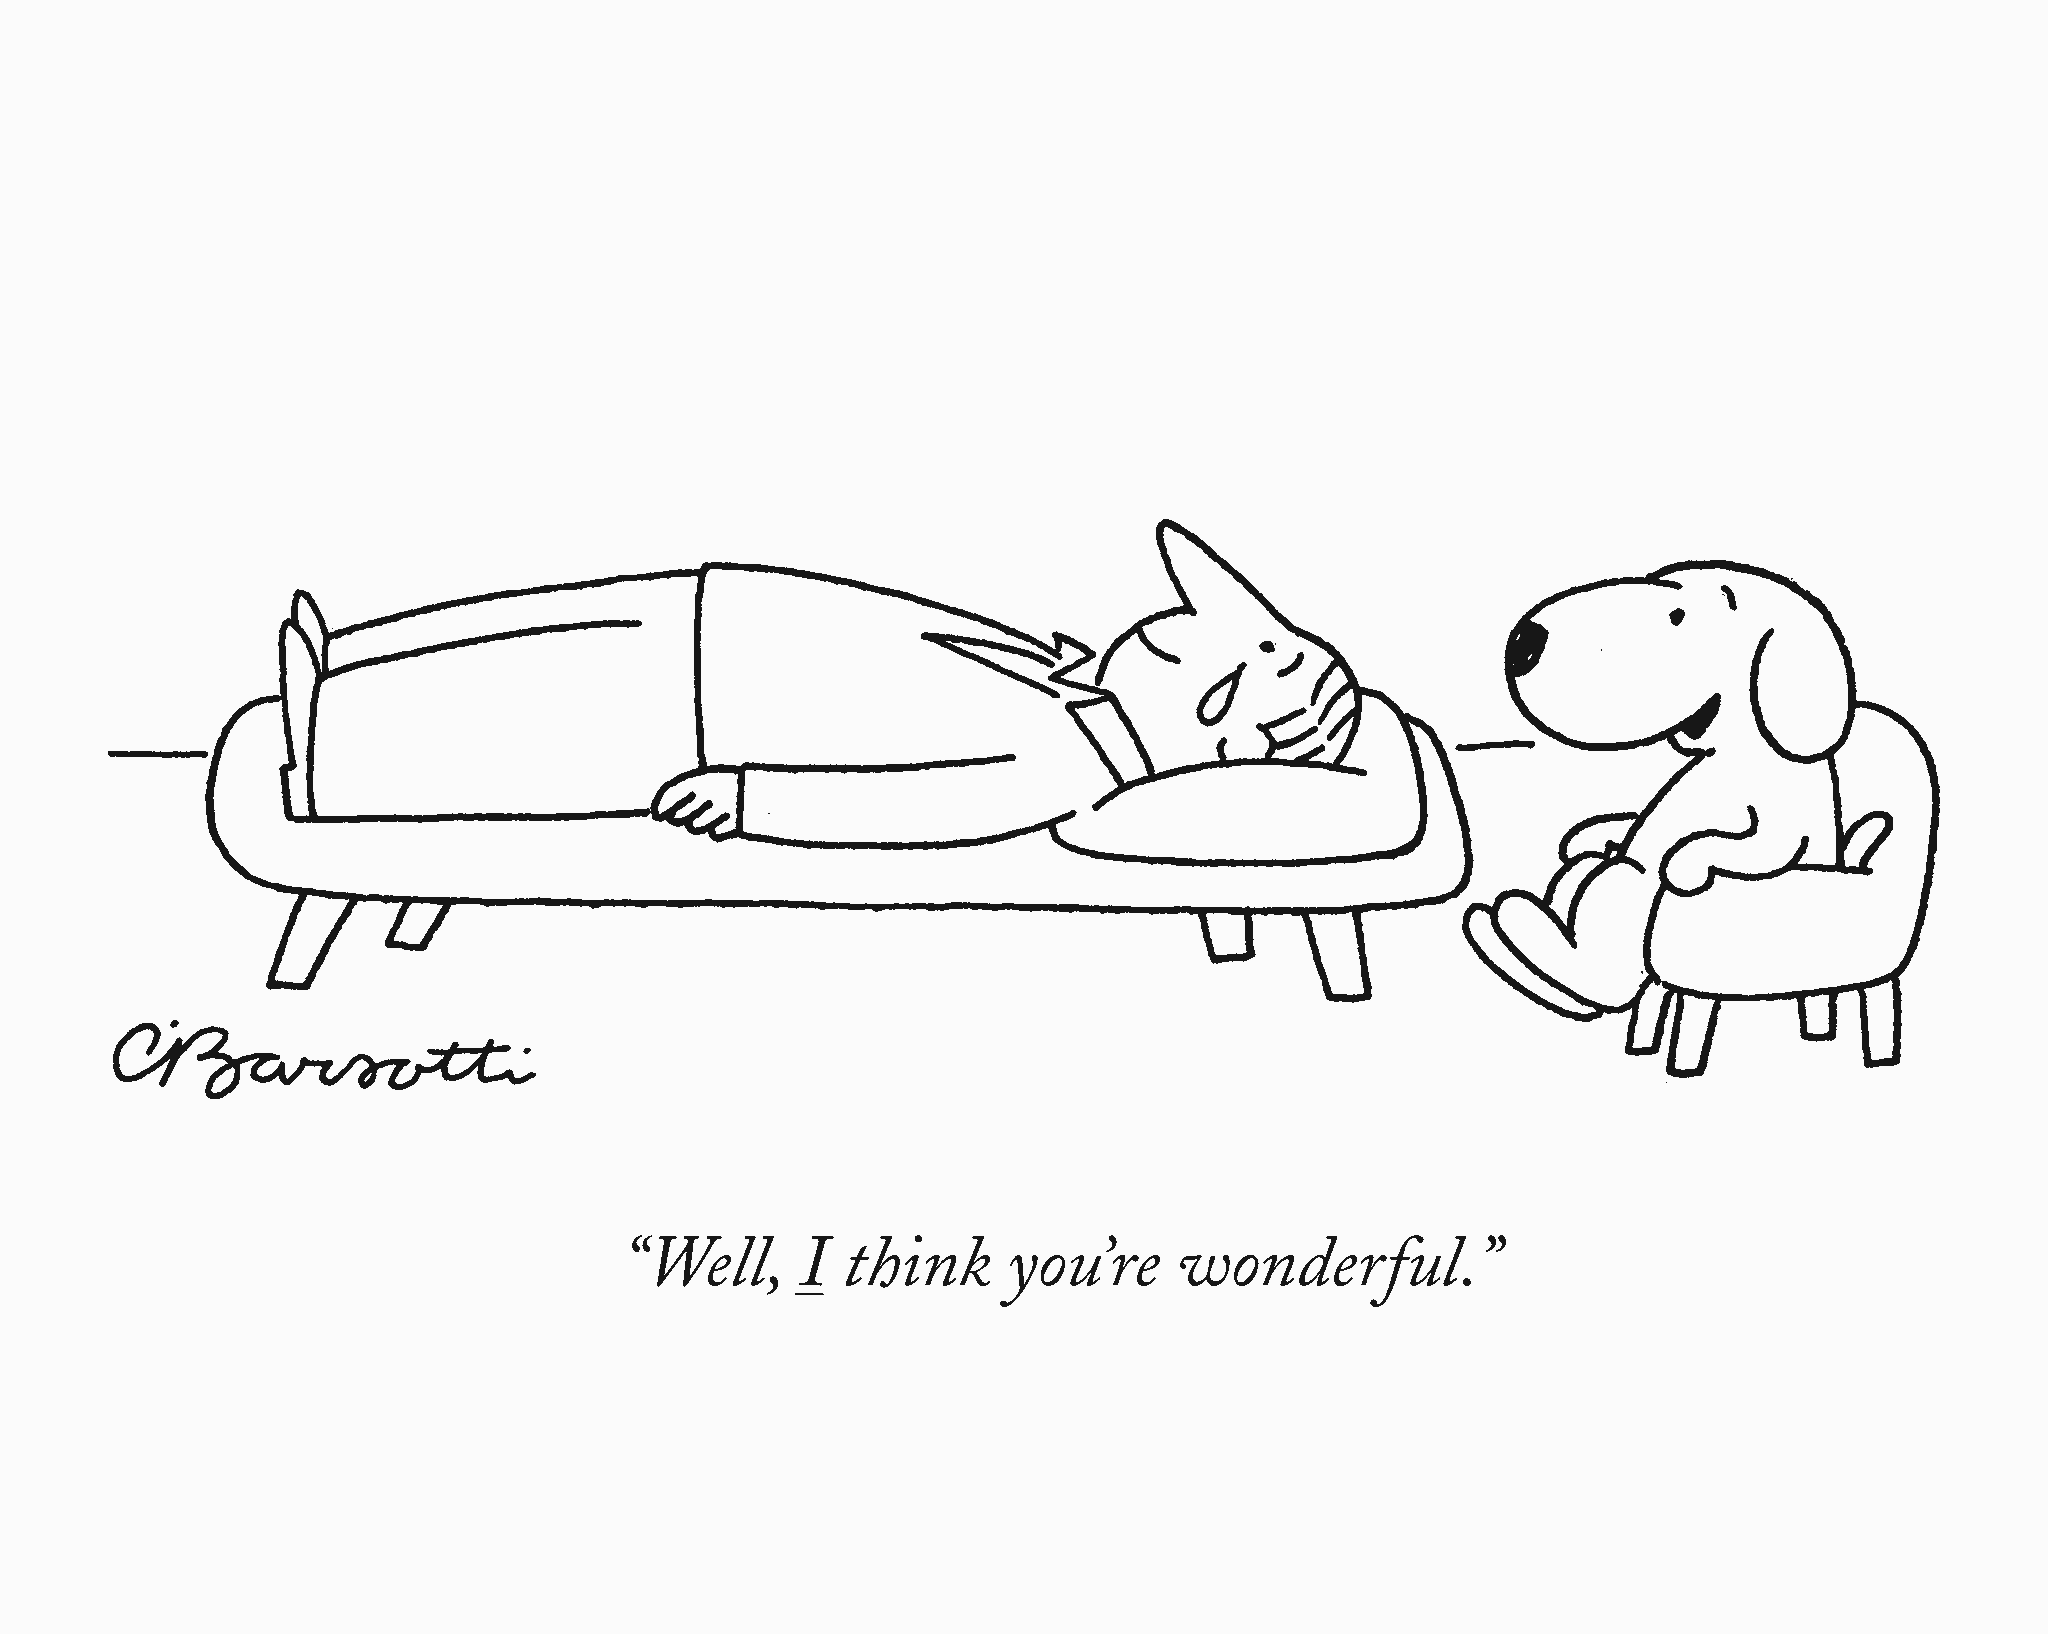 Dog says to therapist well i think you are wonderful